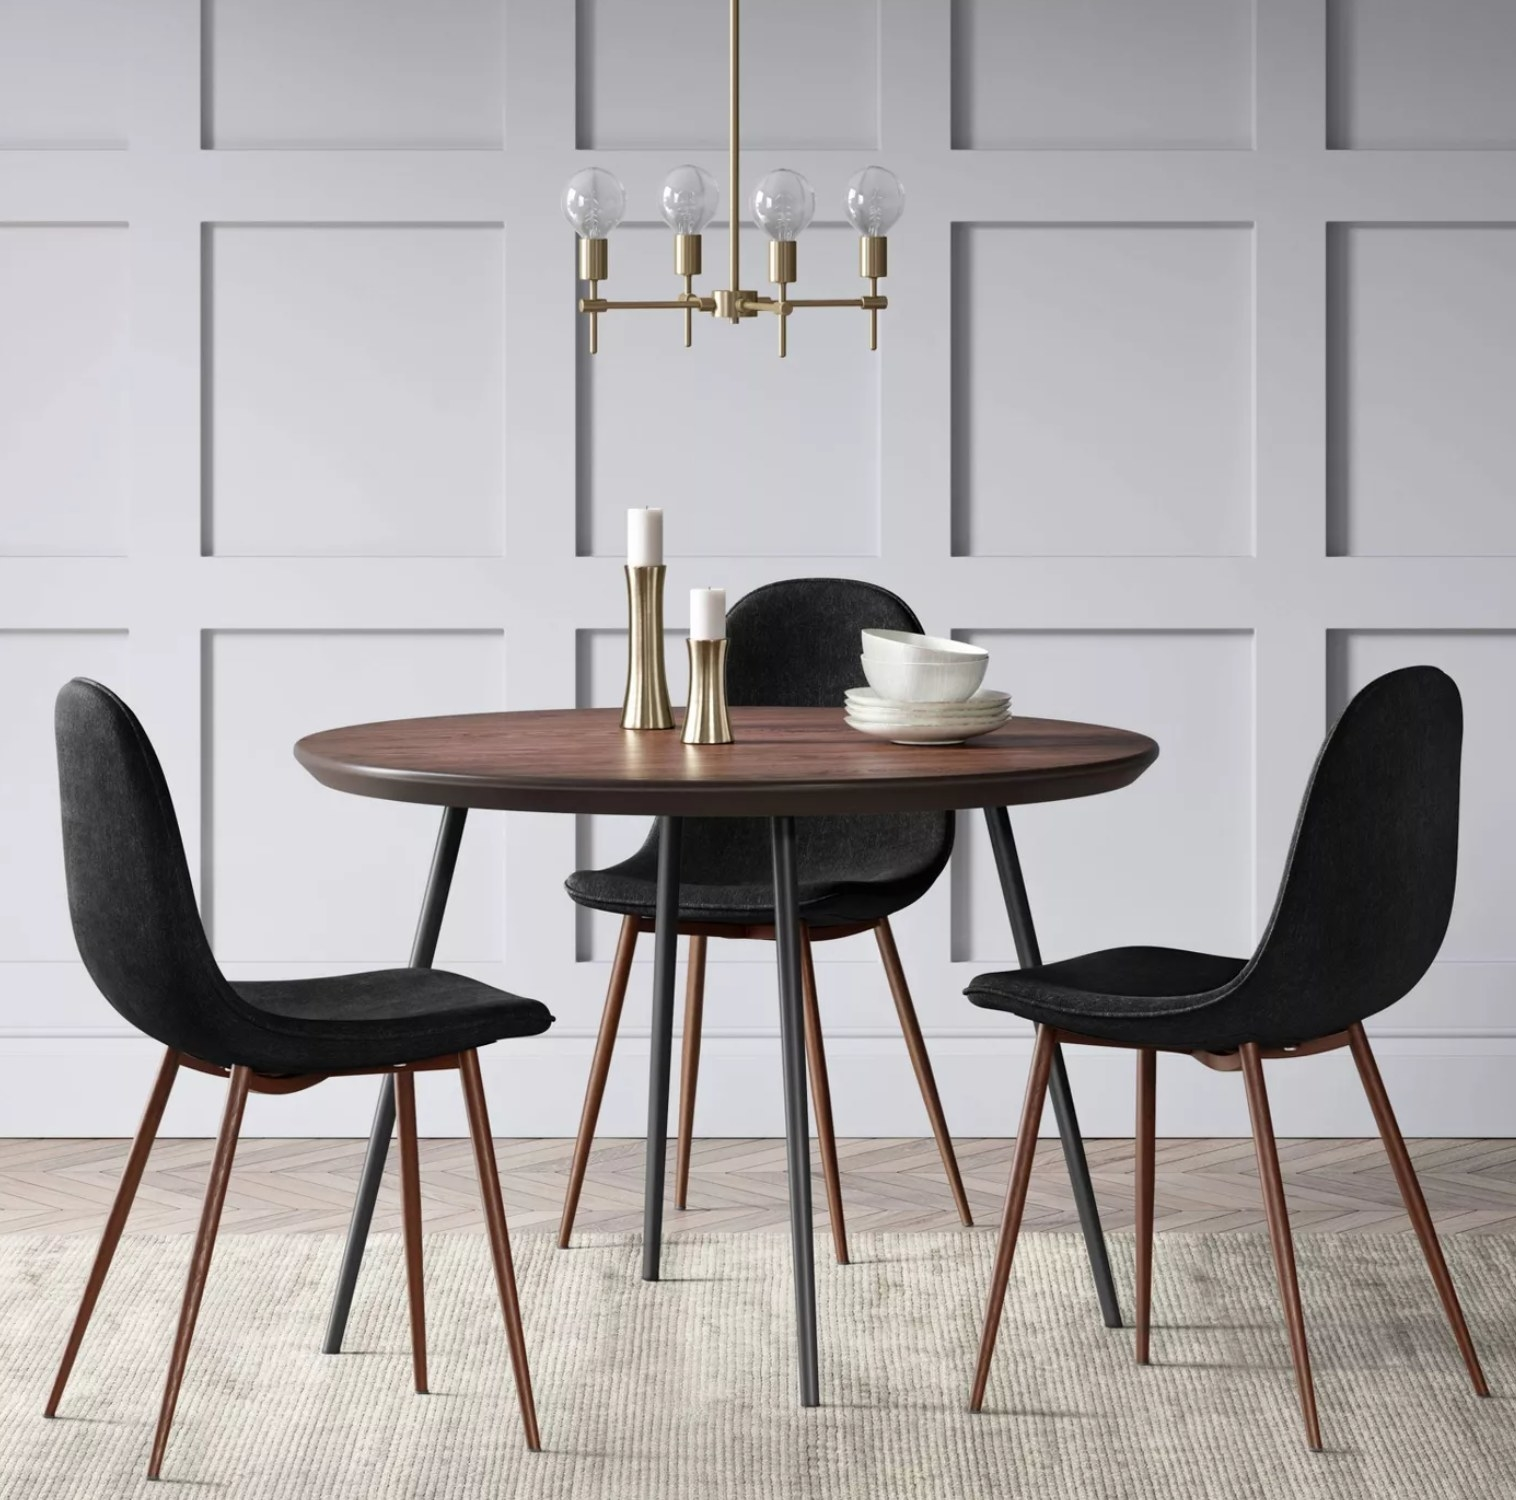 a brown table with the modern chairs in black surrounding it